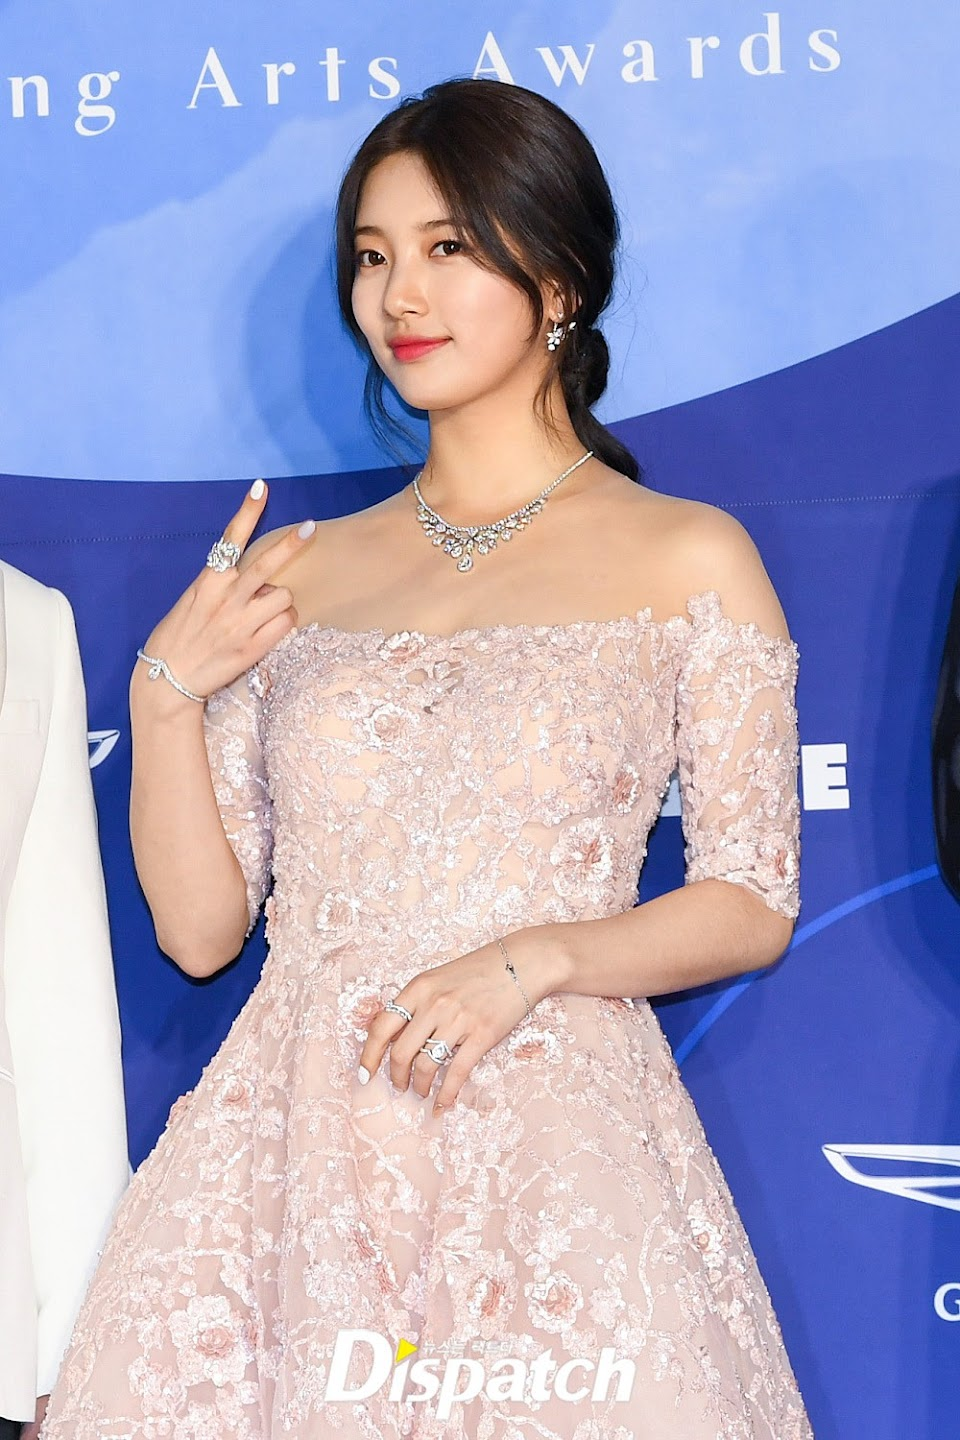 suzy gown 6